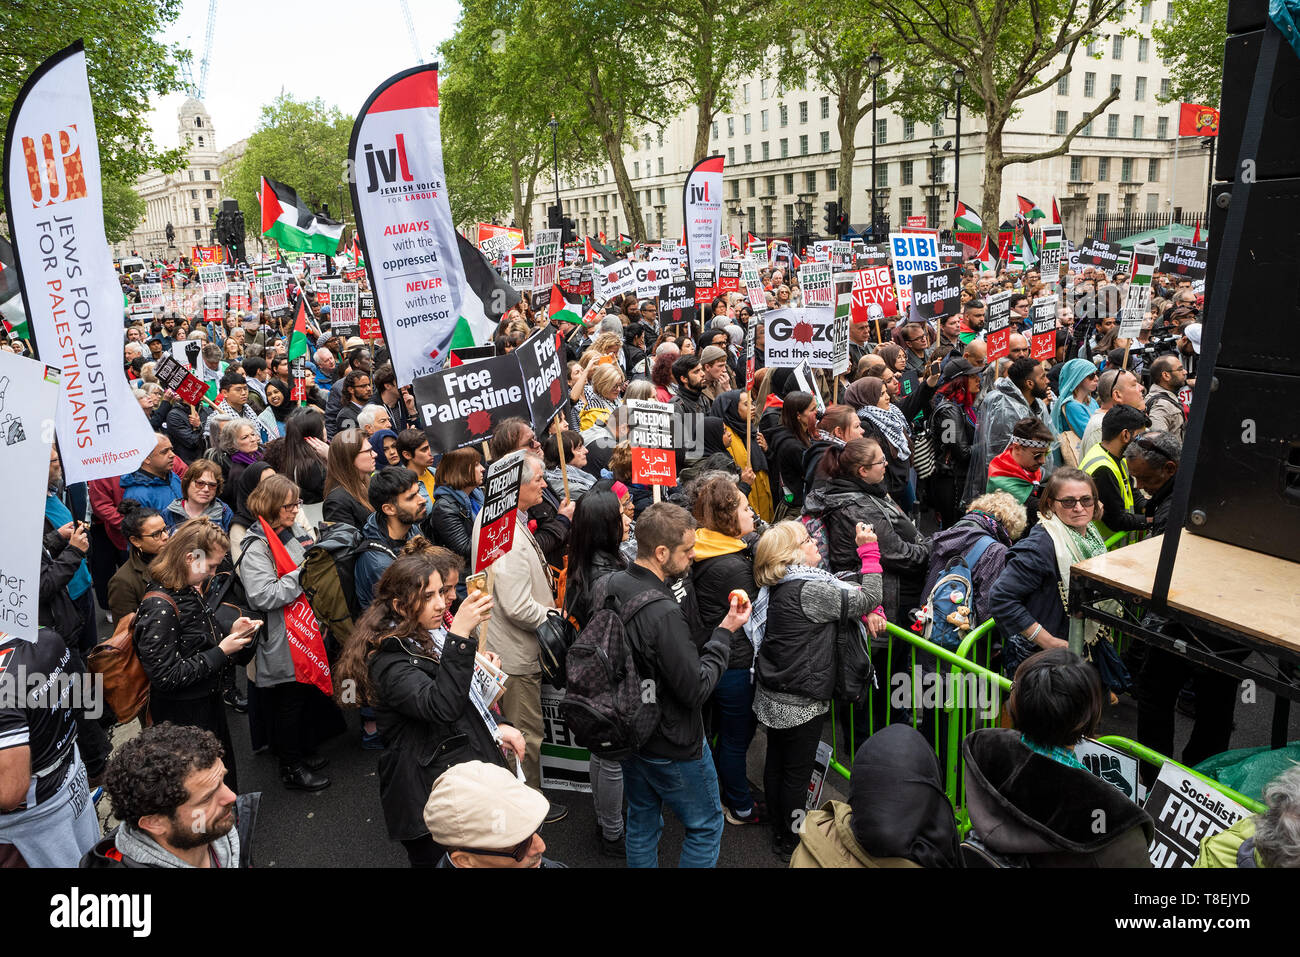 London, UK. May 11th 2019. National Demonstration for Palestine. Thousands of activists marched from Portland Place to Whitehall. Organised by the Palestine Solidarity Campaign, Stop the War Coalition, Palestinian Forum in Britain, Friends of Al- Aqsa & Muslim Association of Britain. Pictured, protesters in Whitehall. Credit: Stephen Bell/Alamy Stock Photo Stock Photo